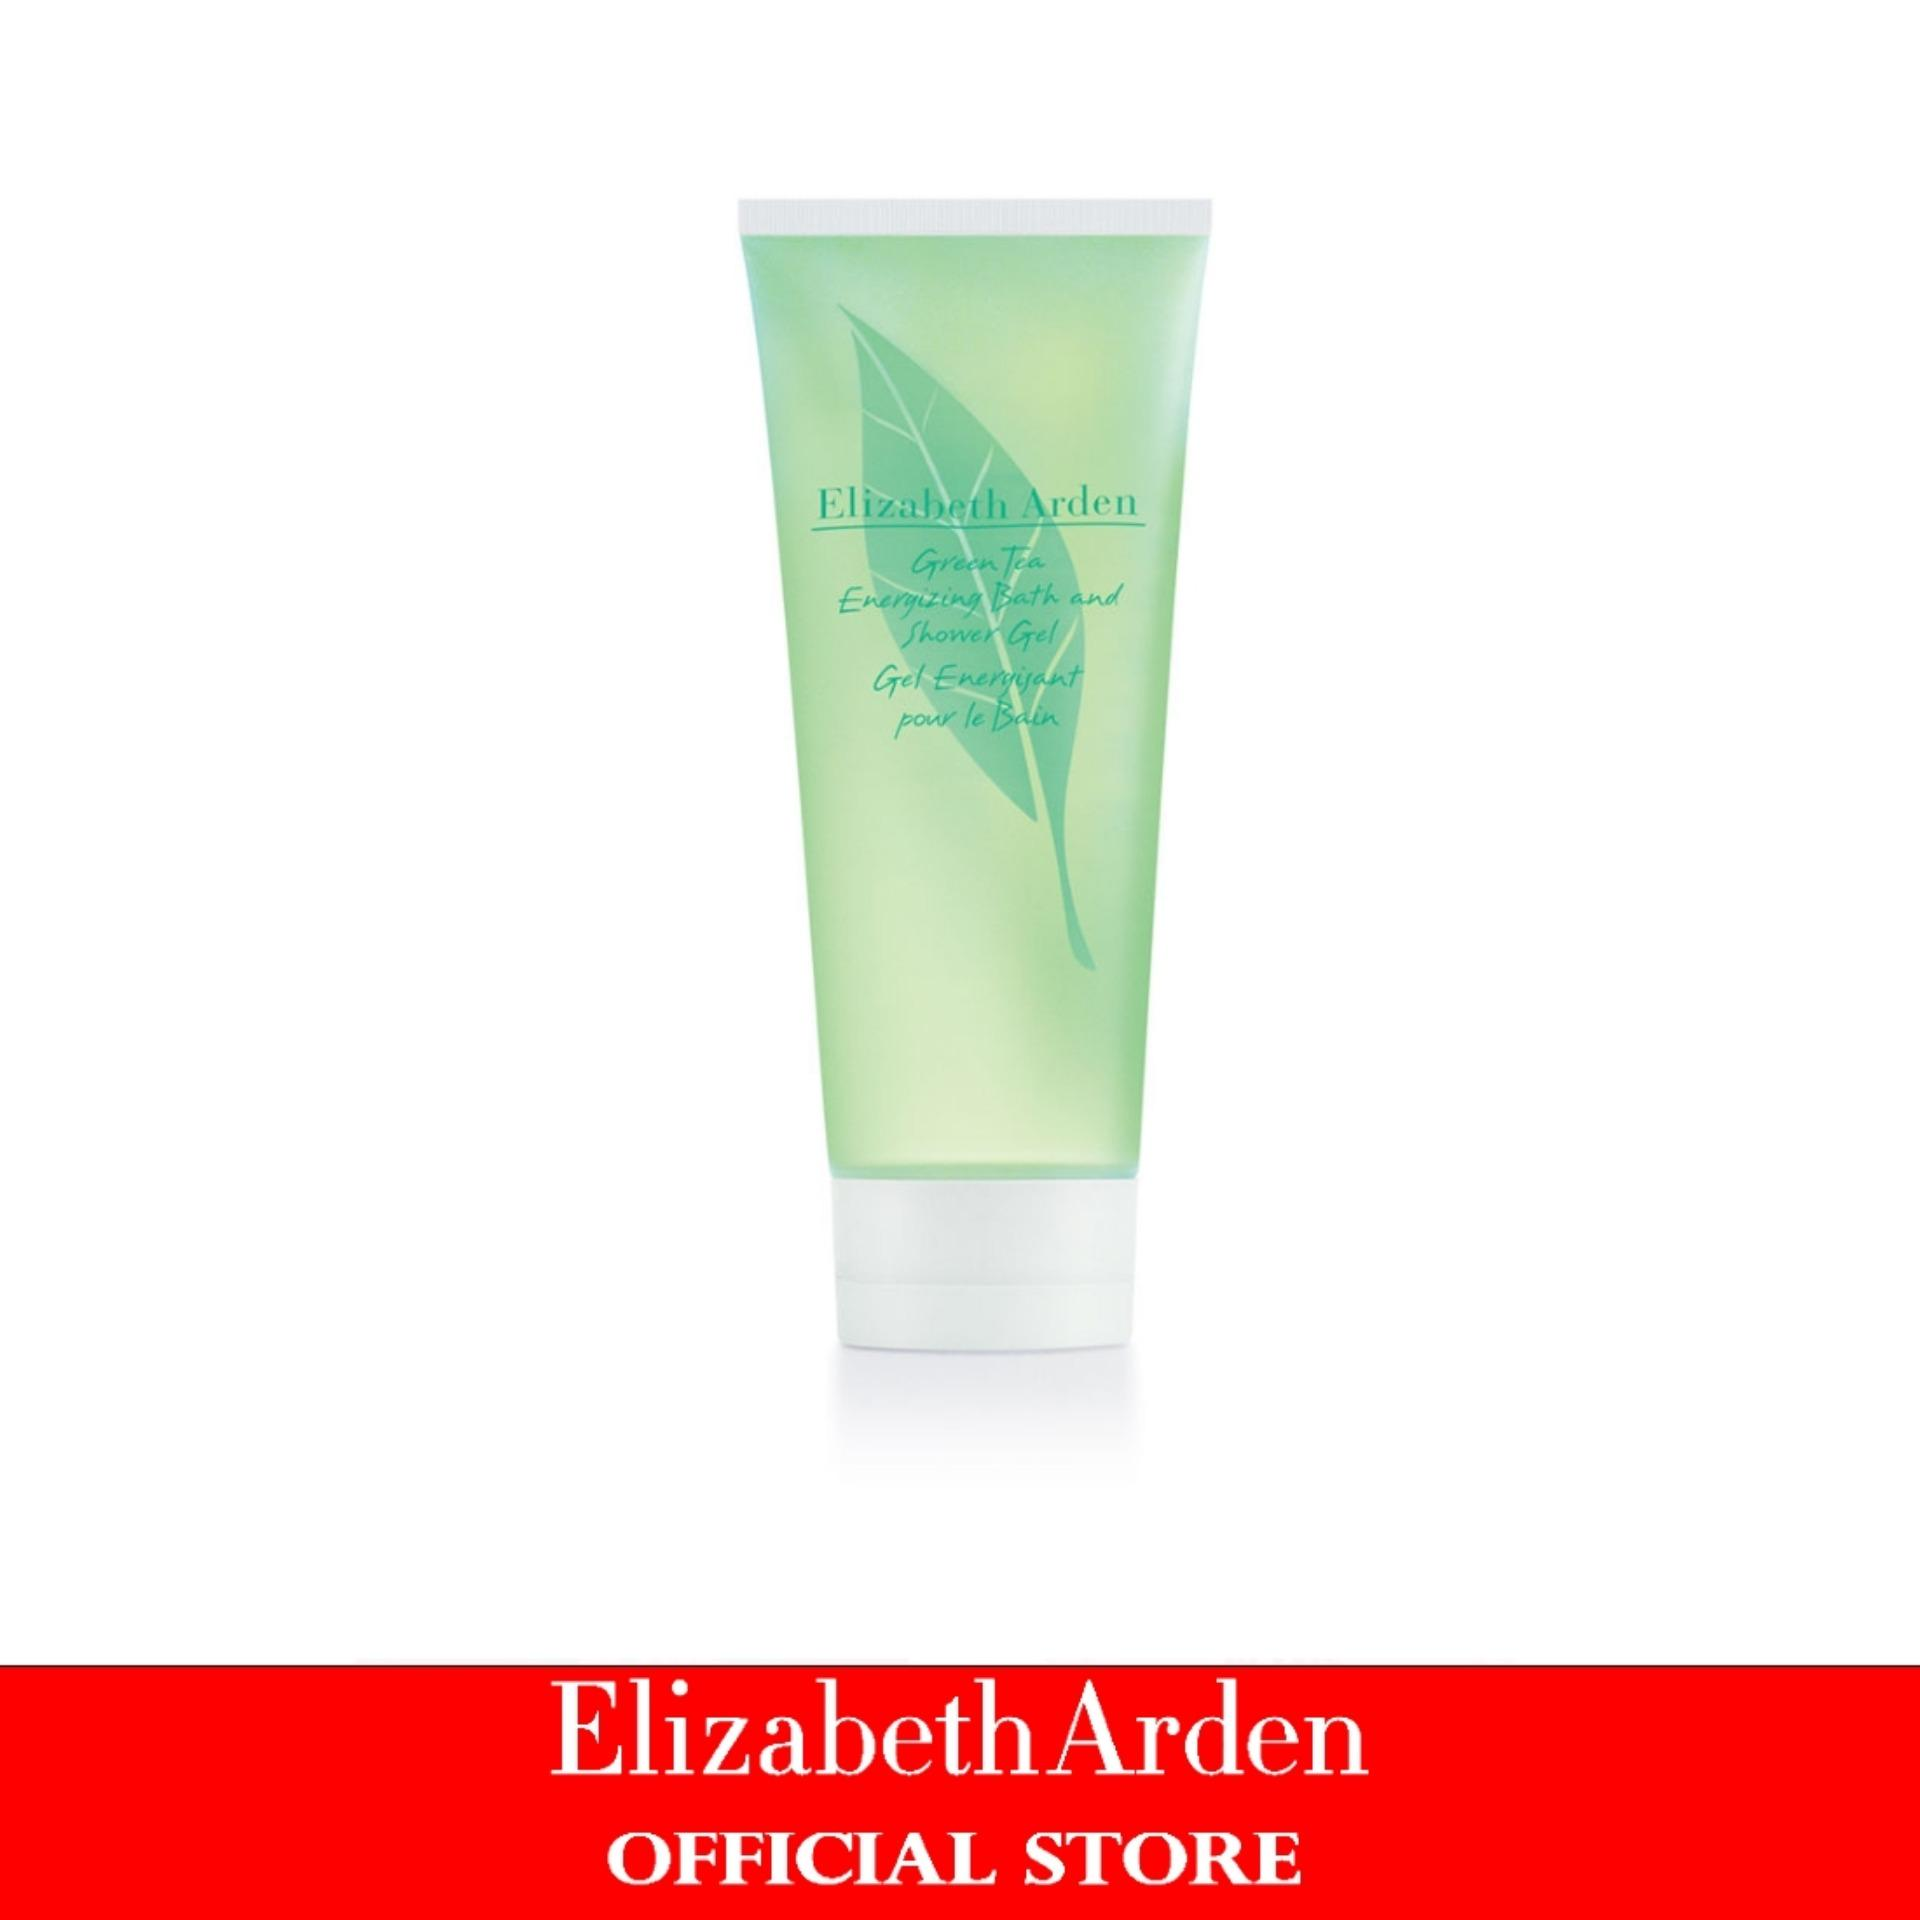 Elizabeth Arden Green Tea Shower Gel 200Ml Review